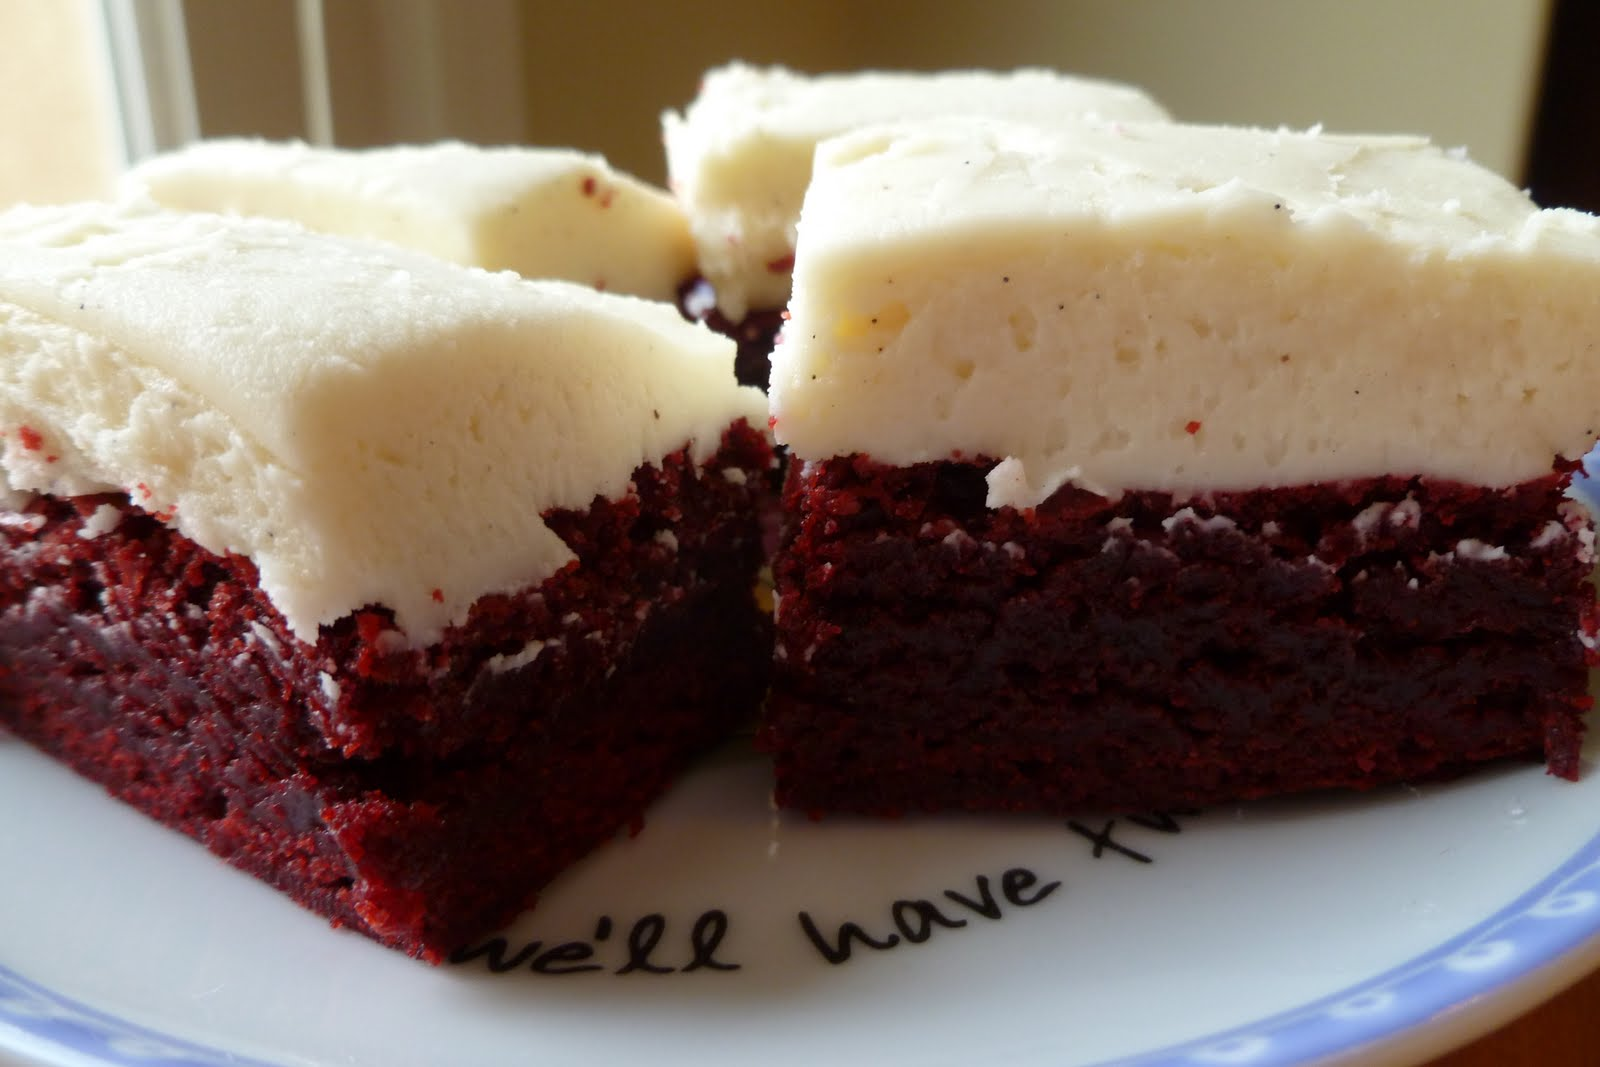 Red velvet cake recipe with white cake mix